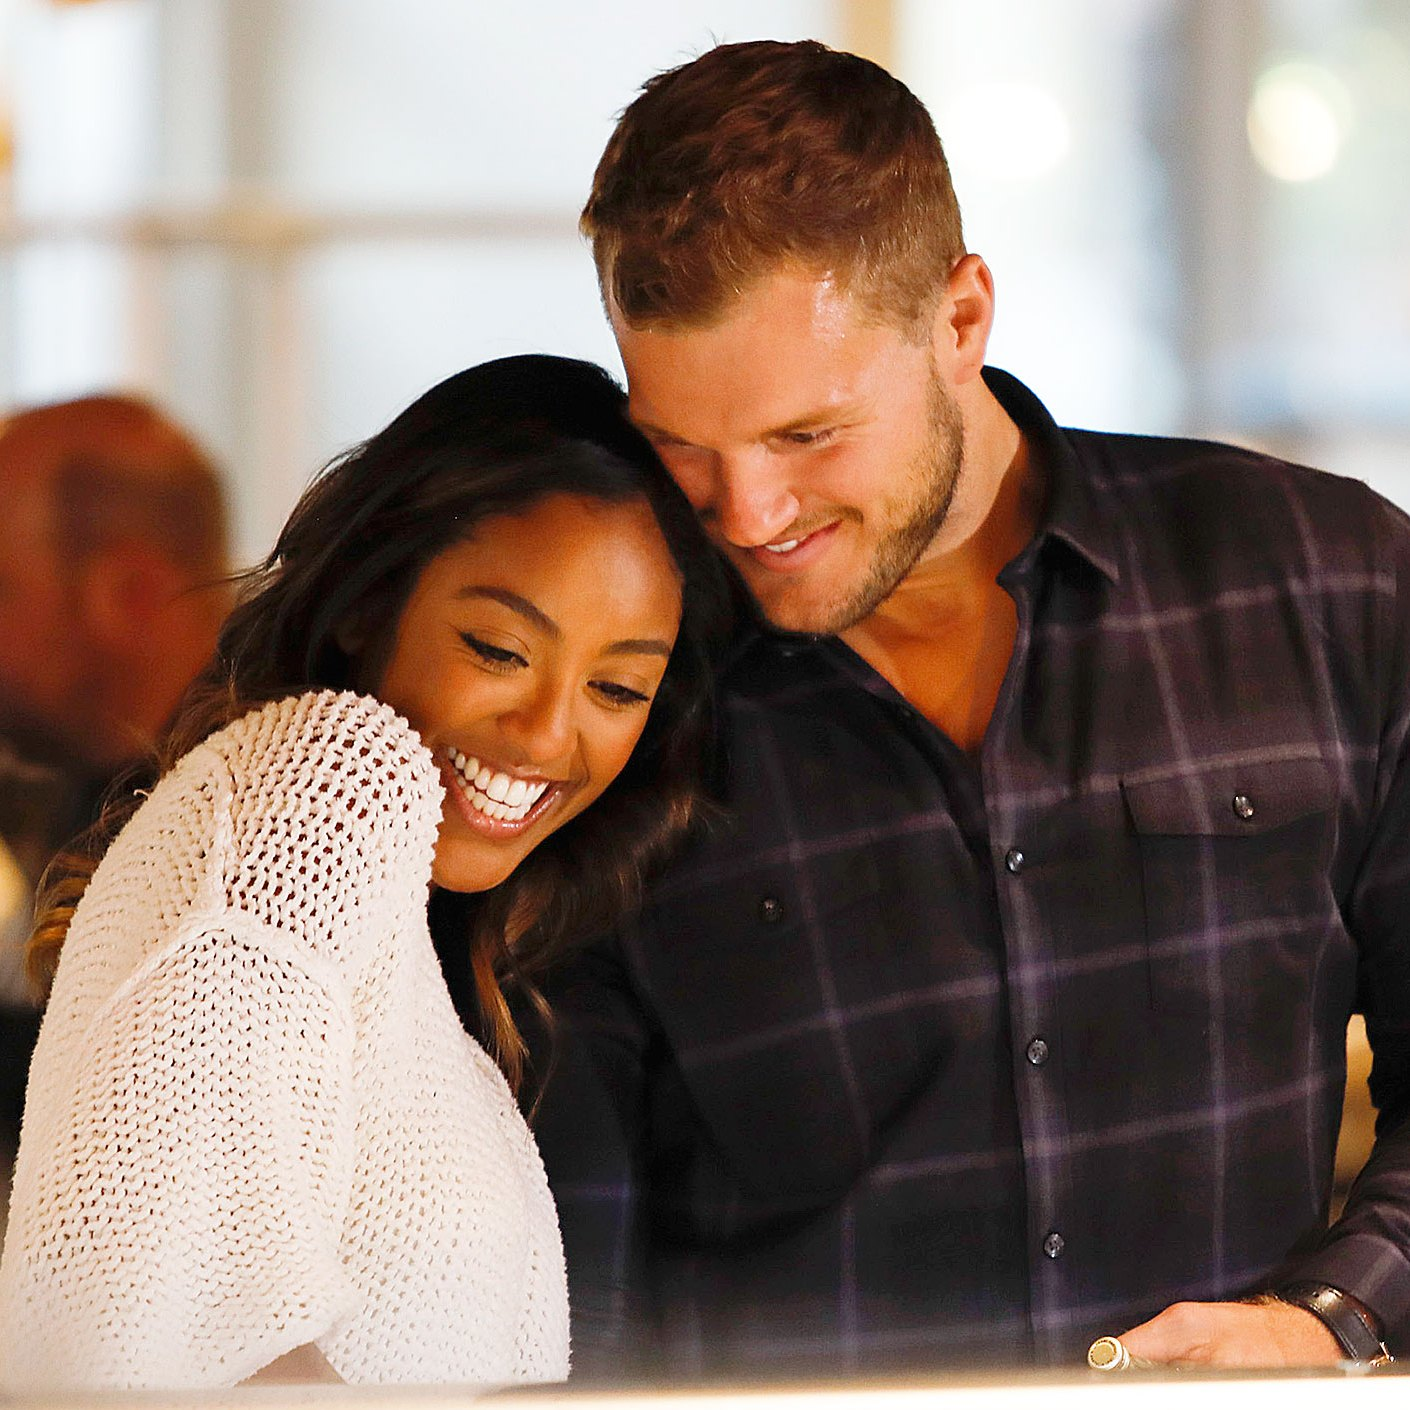 Tayshia Adams Exclusively Dating Ex Chase Olswang Before The Bachelor Colton Underwood